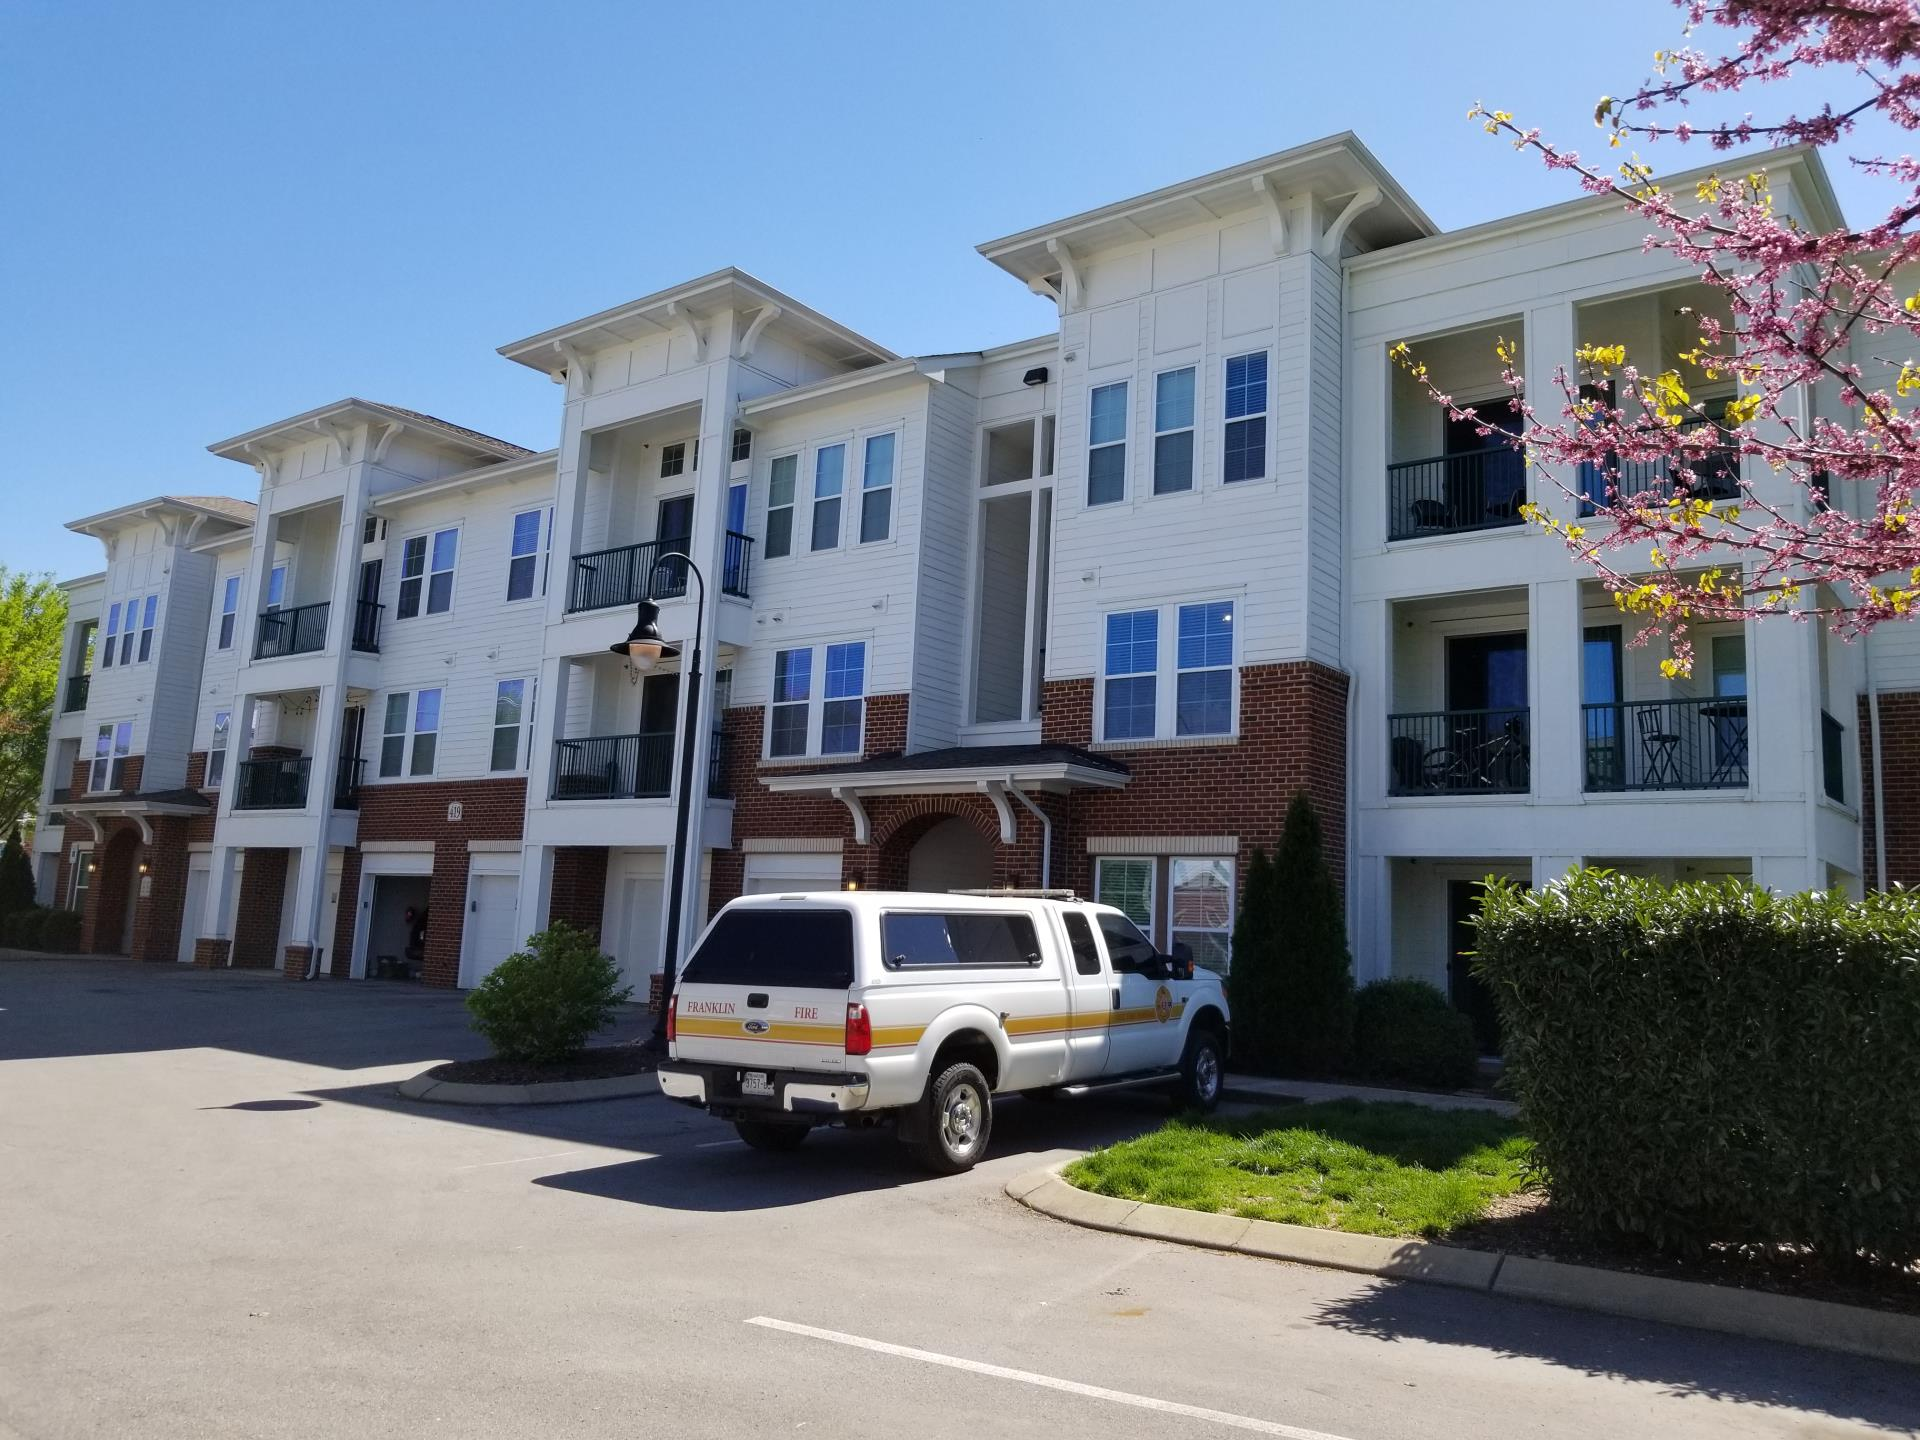 Everly Apartments